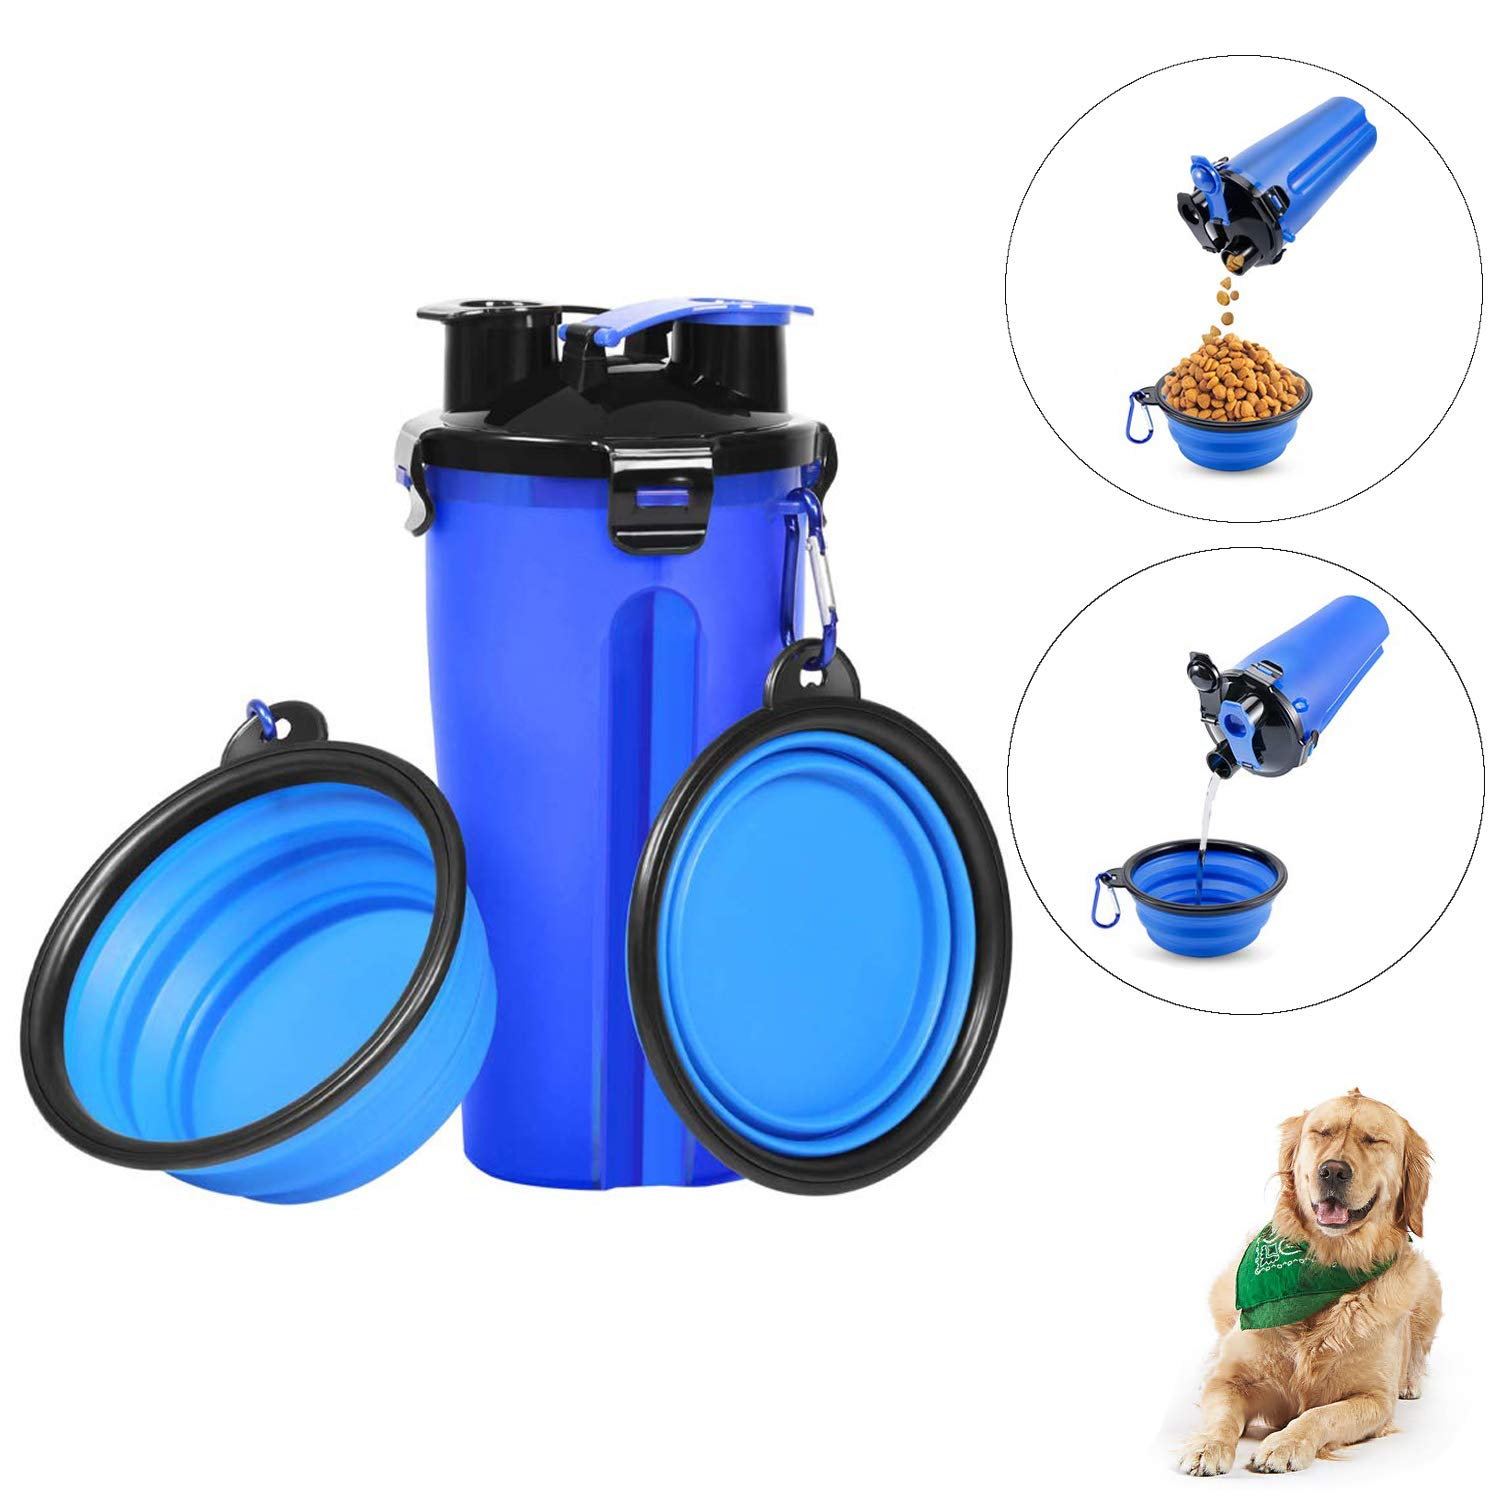 Handy Dog Gear